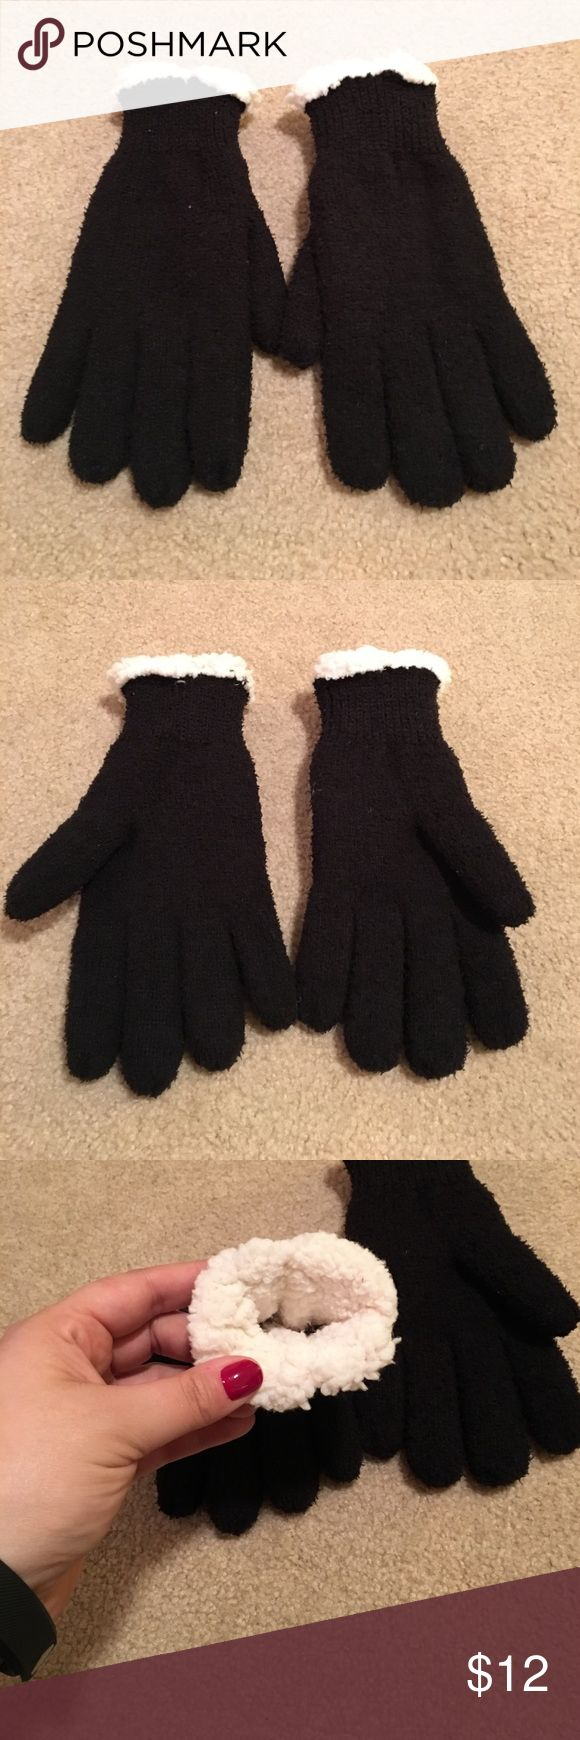 NWOT Isotoner black and white gloves, fleece lined NEW without tags (never worn!) Isotoner black and white gloves, fleece lined isotoner Accessories Gloves & Mittens